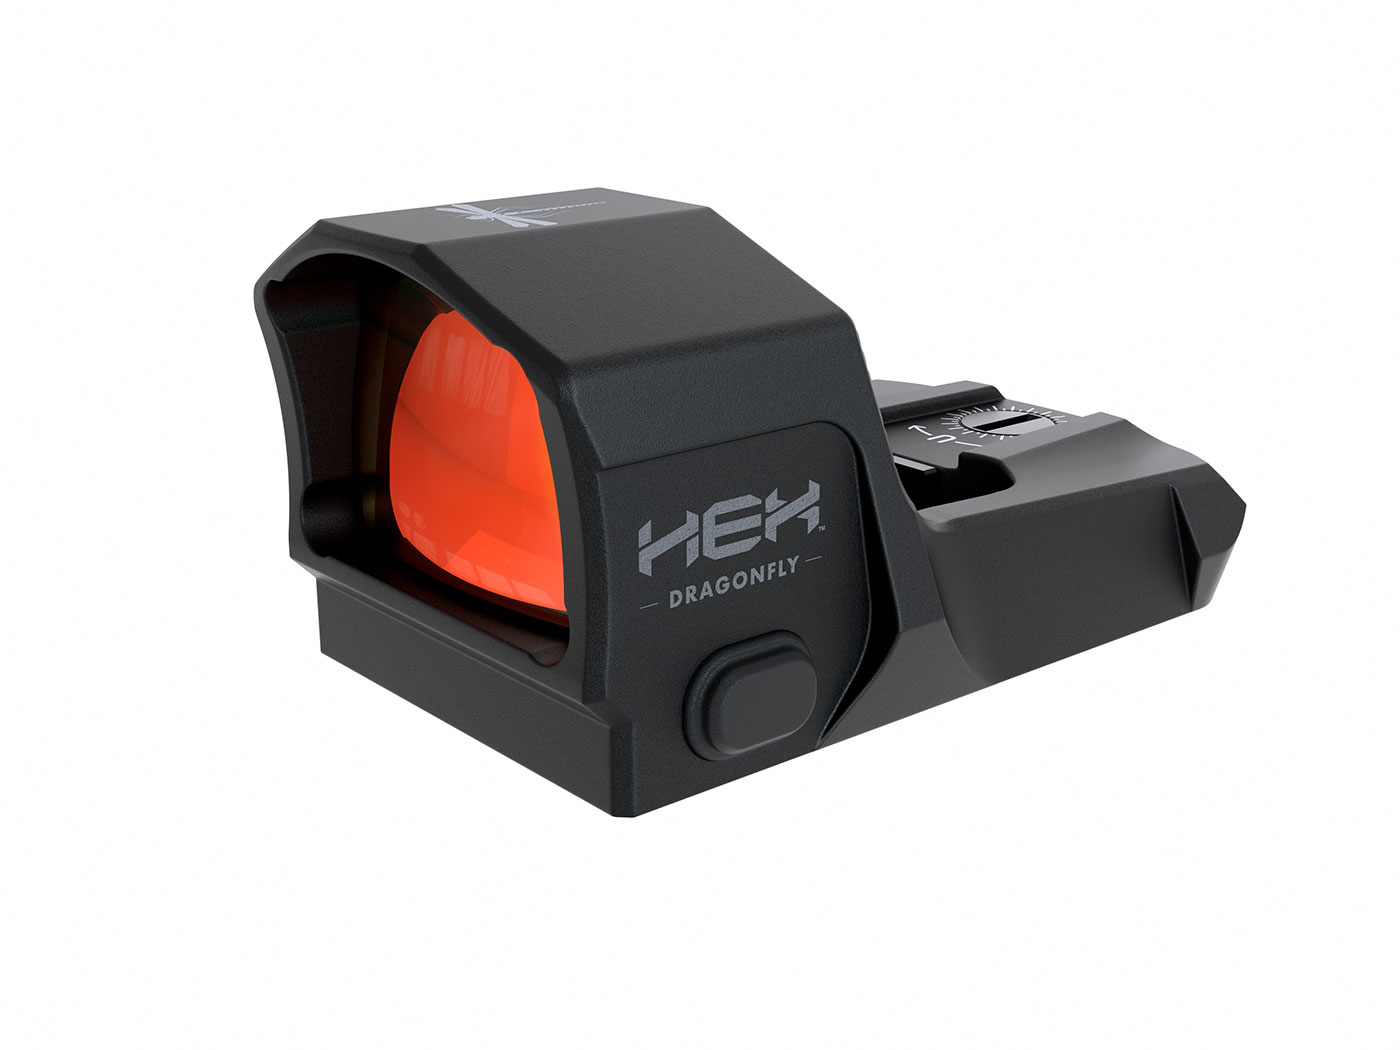 springfield armory HEX WASP GE5077-MIC-RET HEX DRAGONFLY GE5077-STND-RET red dot micro pistol red dot slide cut